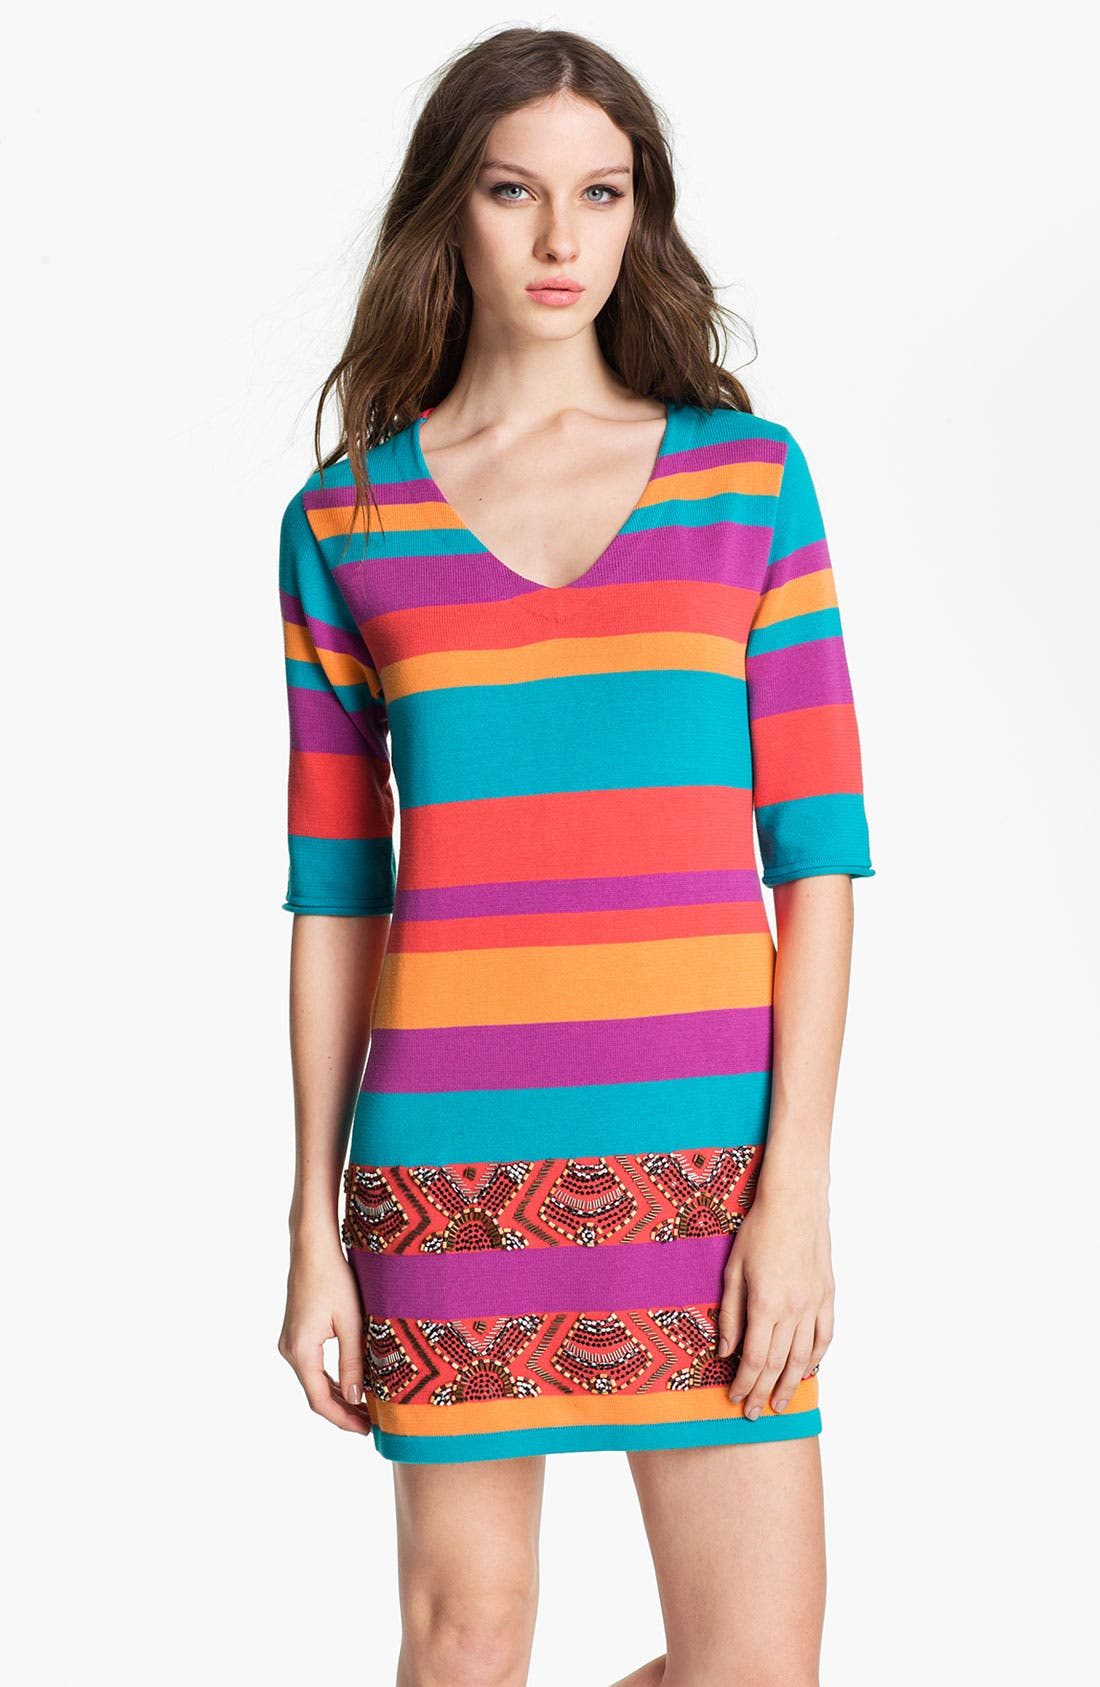 Alternate Image 1 Selected - Nanette Lepore 'Wah Wah' Cotton Sweater Dress